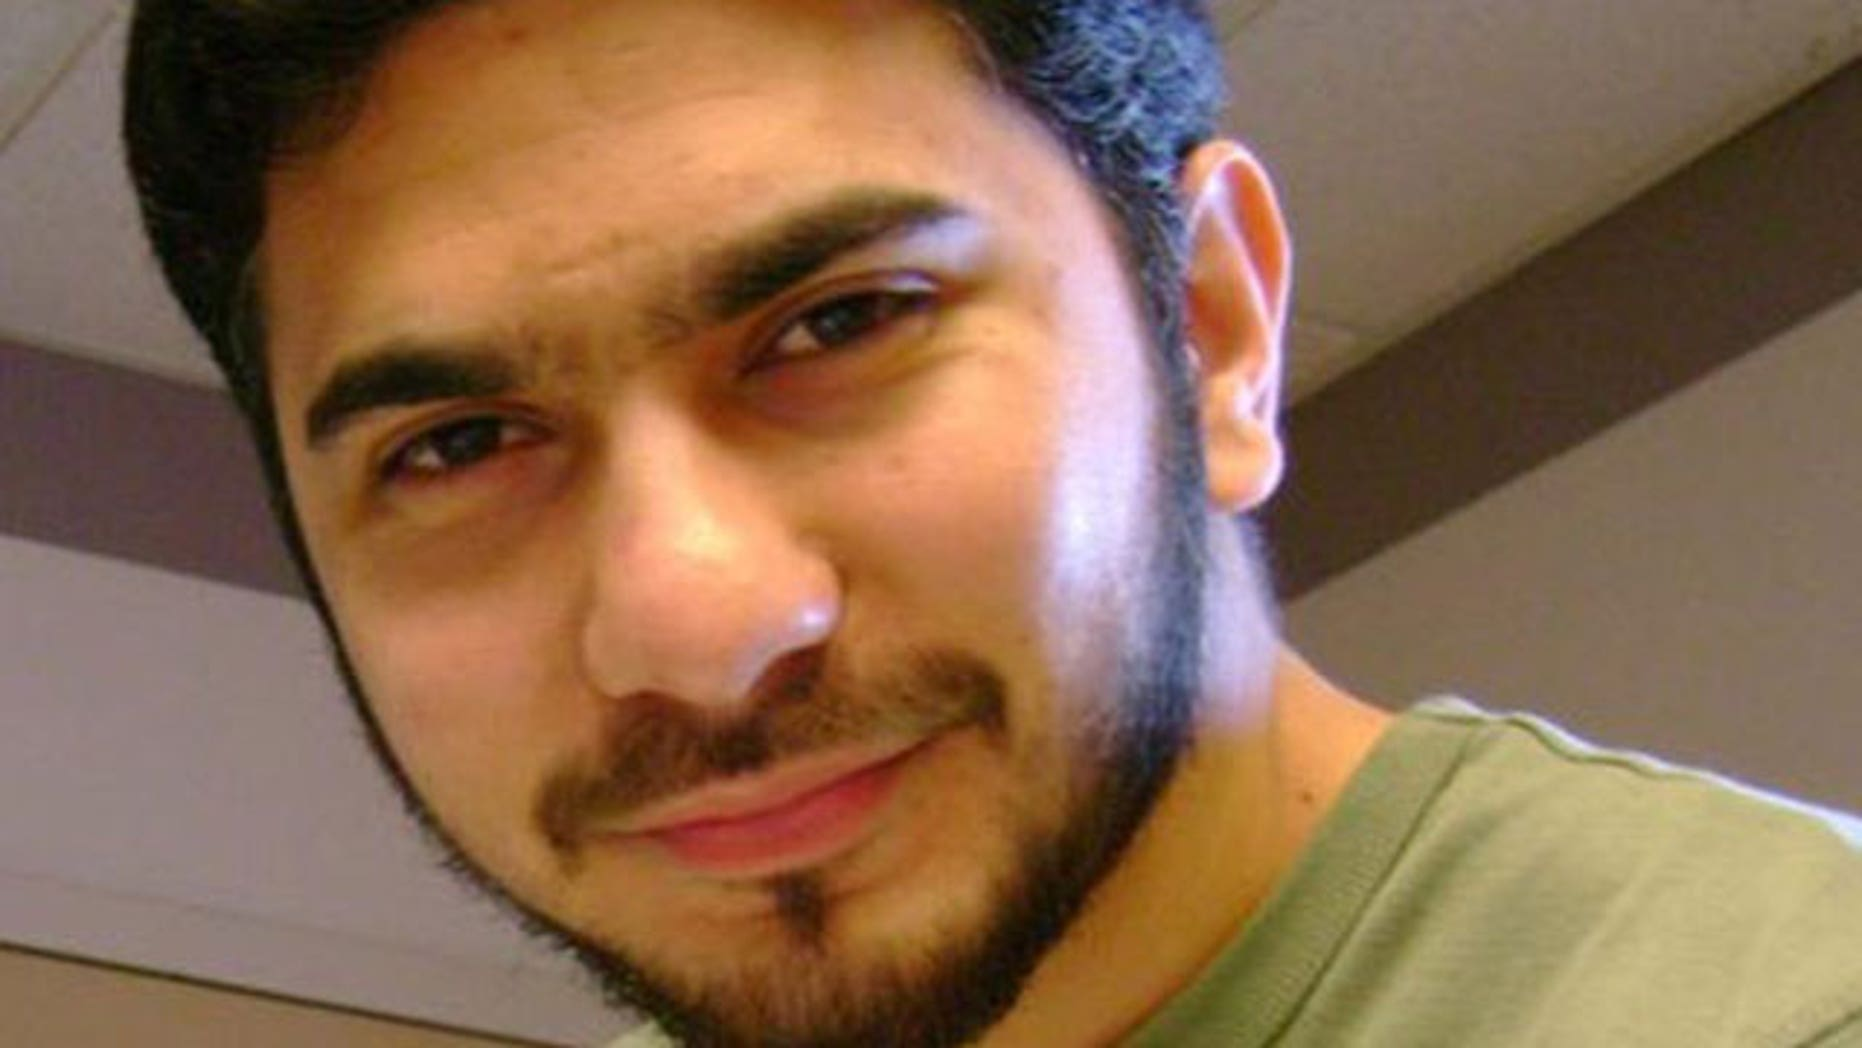 In this undated file photo from the social networking site Orkut.com, a man who was identified by neighbors in Connecticut as Faisal Shahzad, is shown.